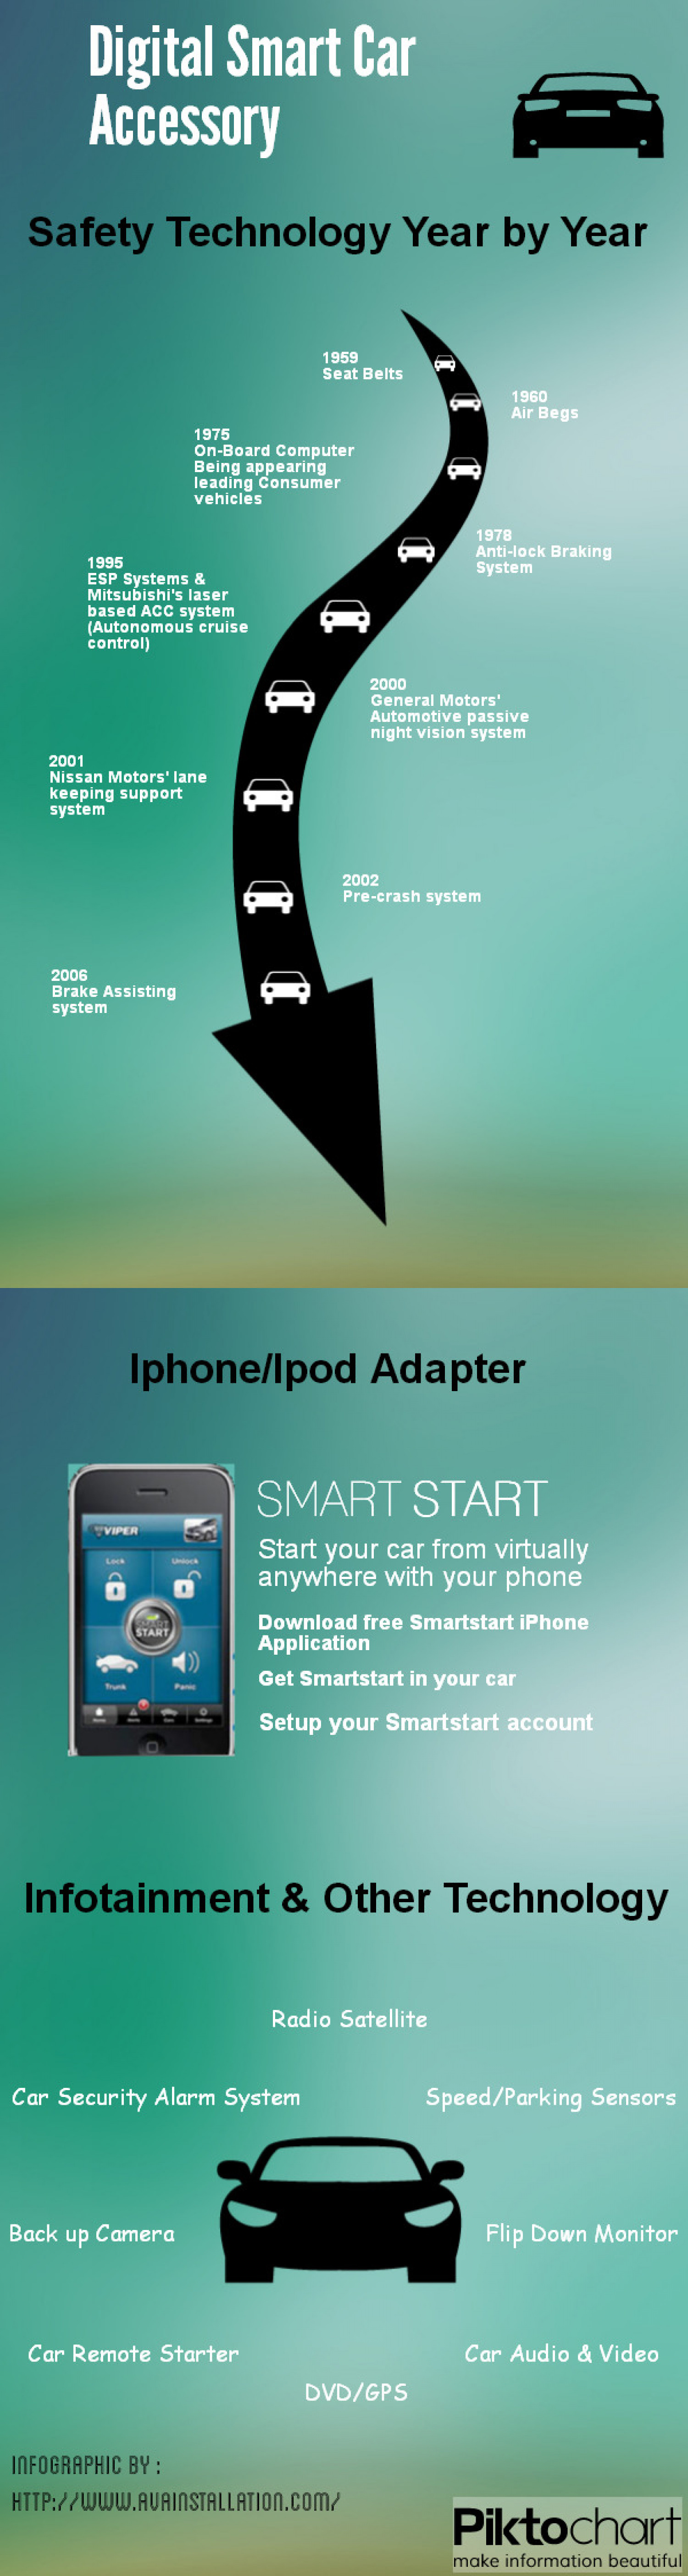 Digital Smart Car Accessory Infographic